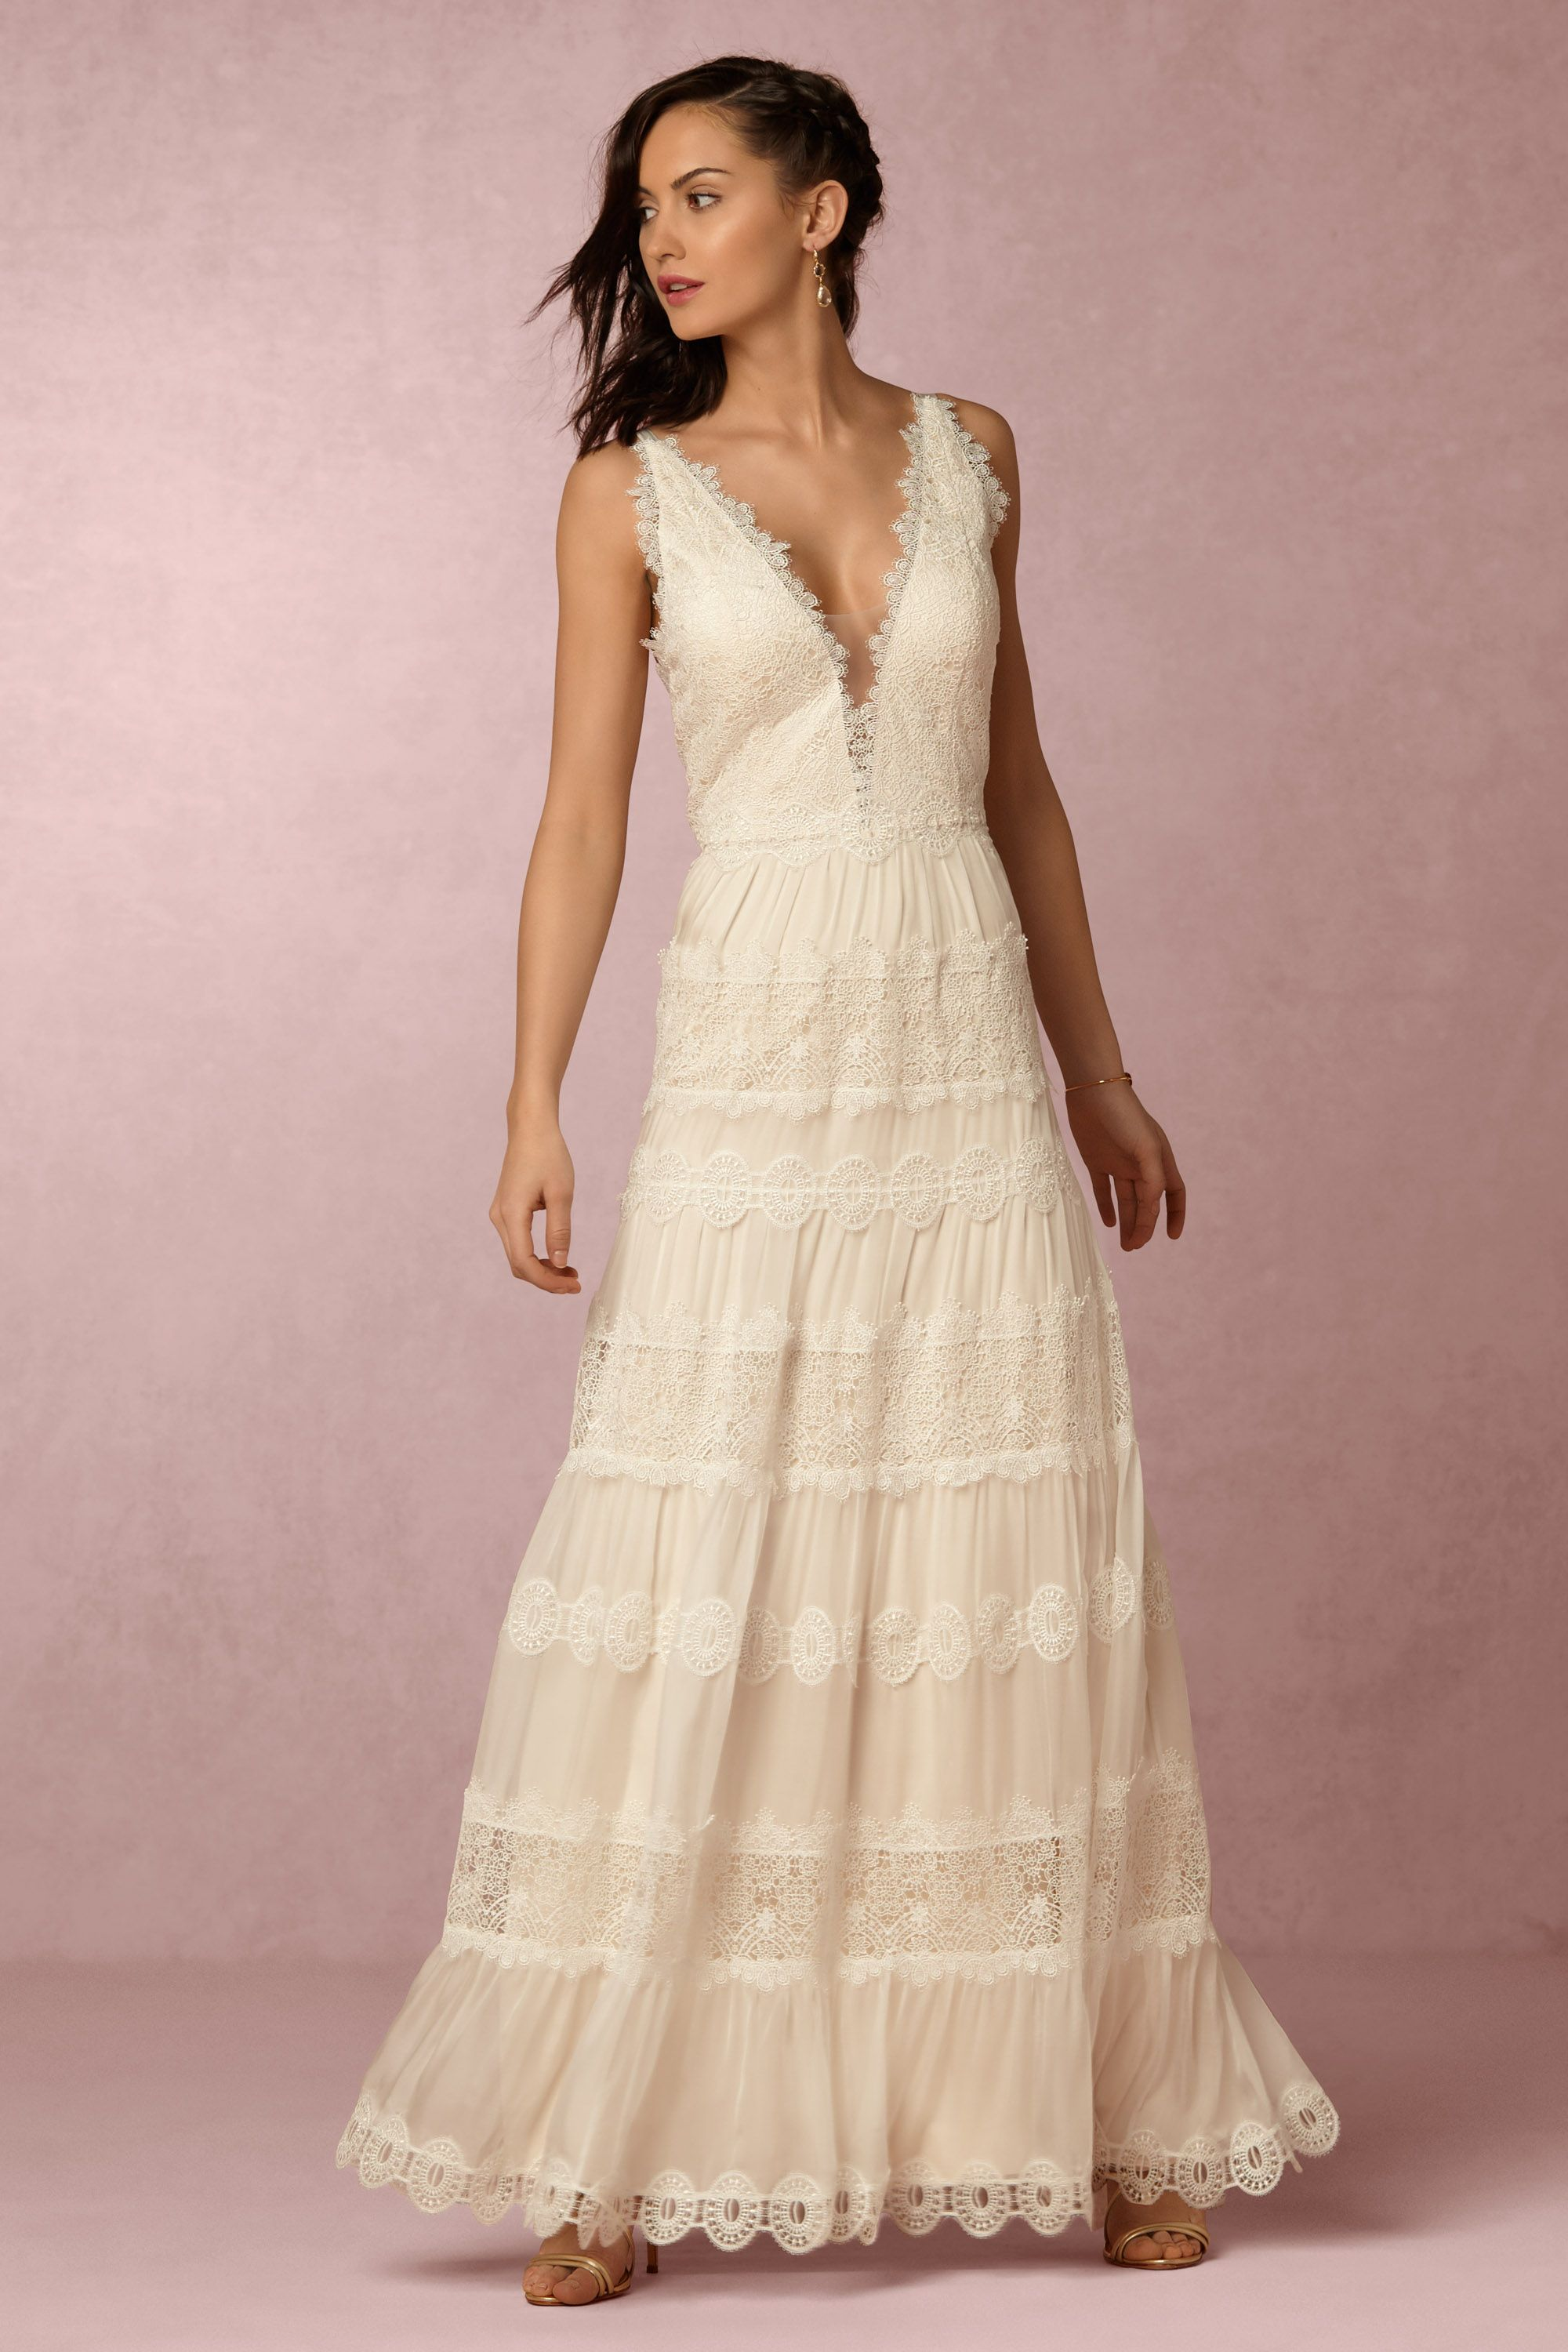 Wedding Anthropology Wedding Dresses genevieve gown in bride bhldn champagne bhldn